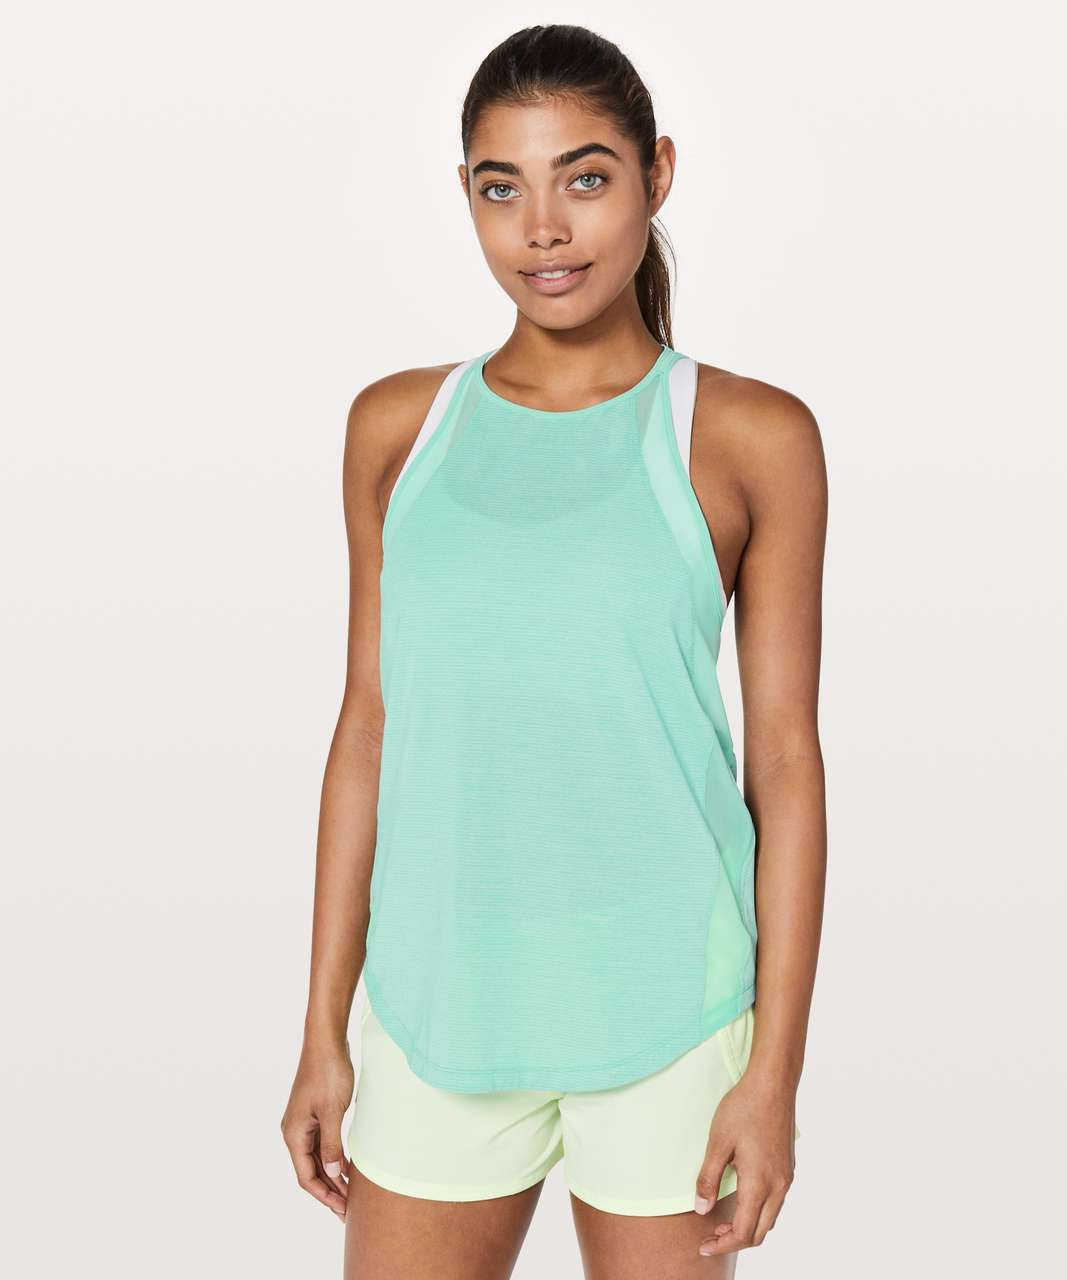 Lululemon Run Off-Route Tank - Heathered Washed Marsh / Washed Marsh